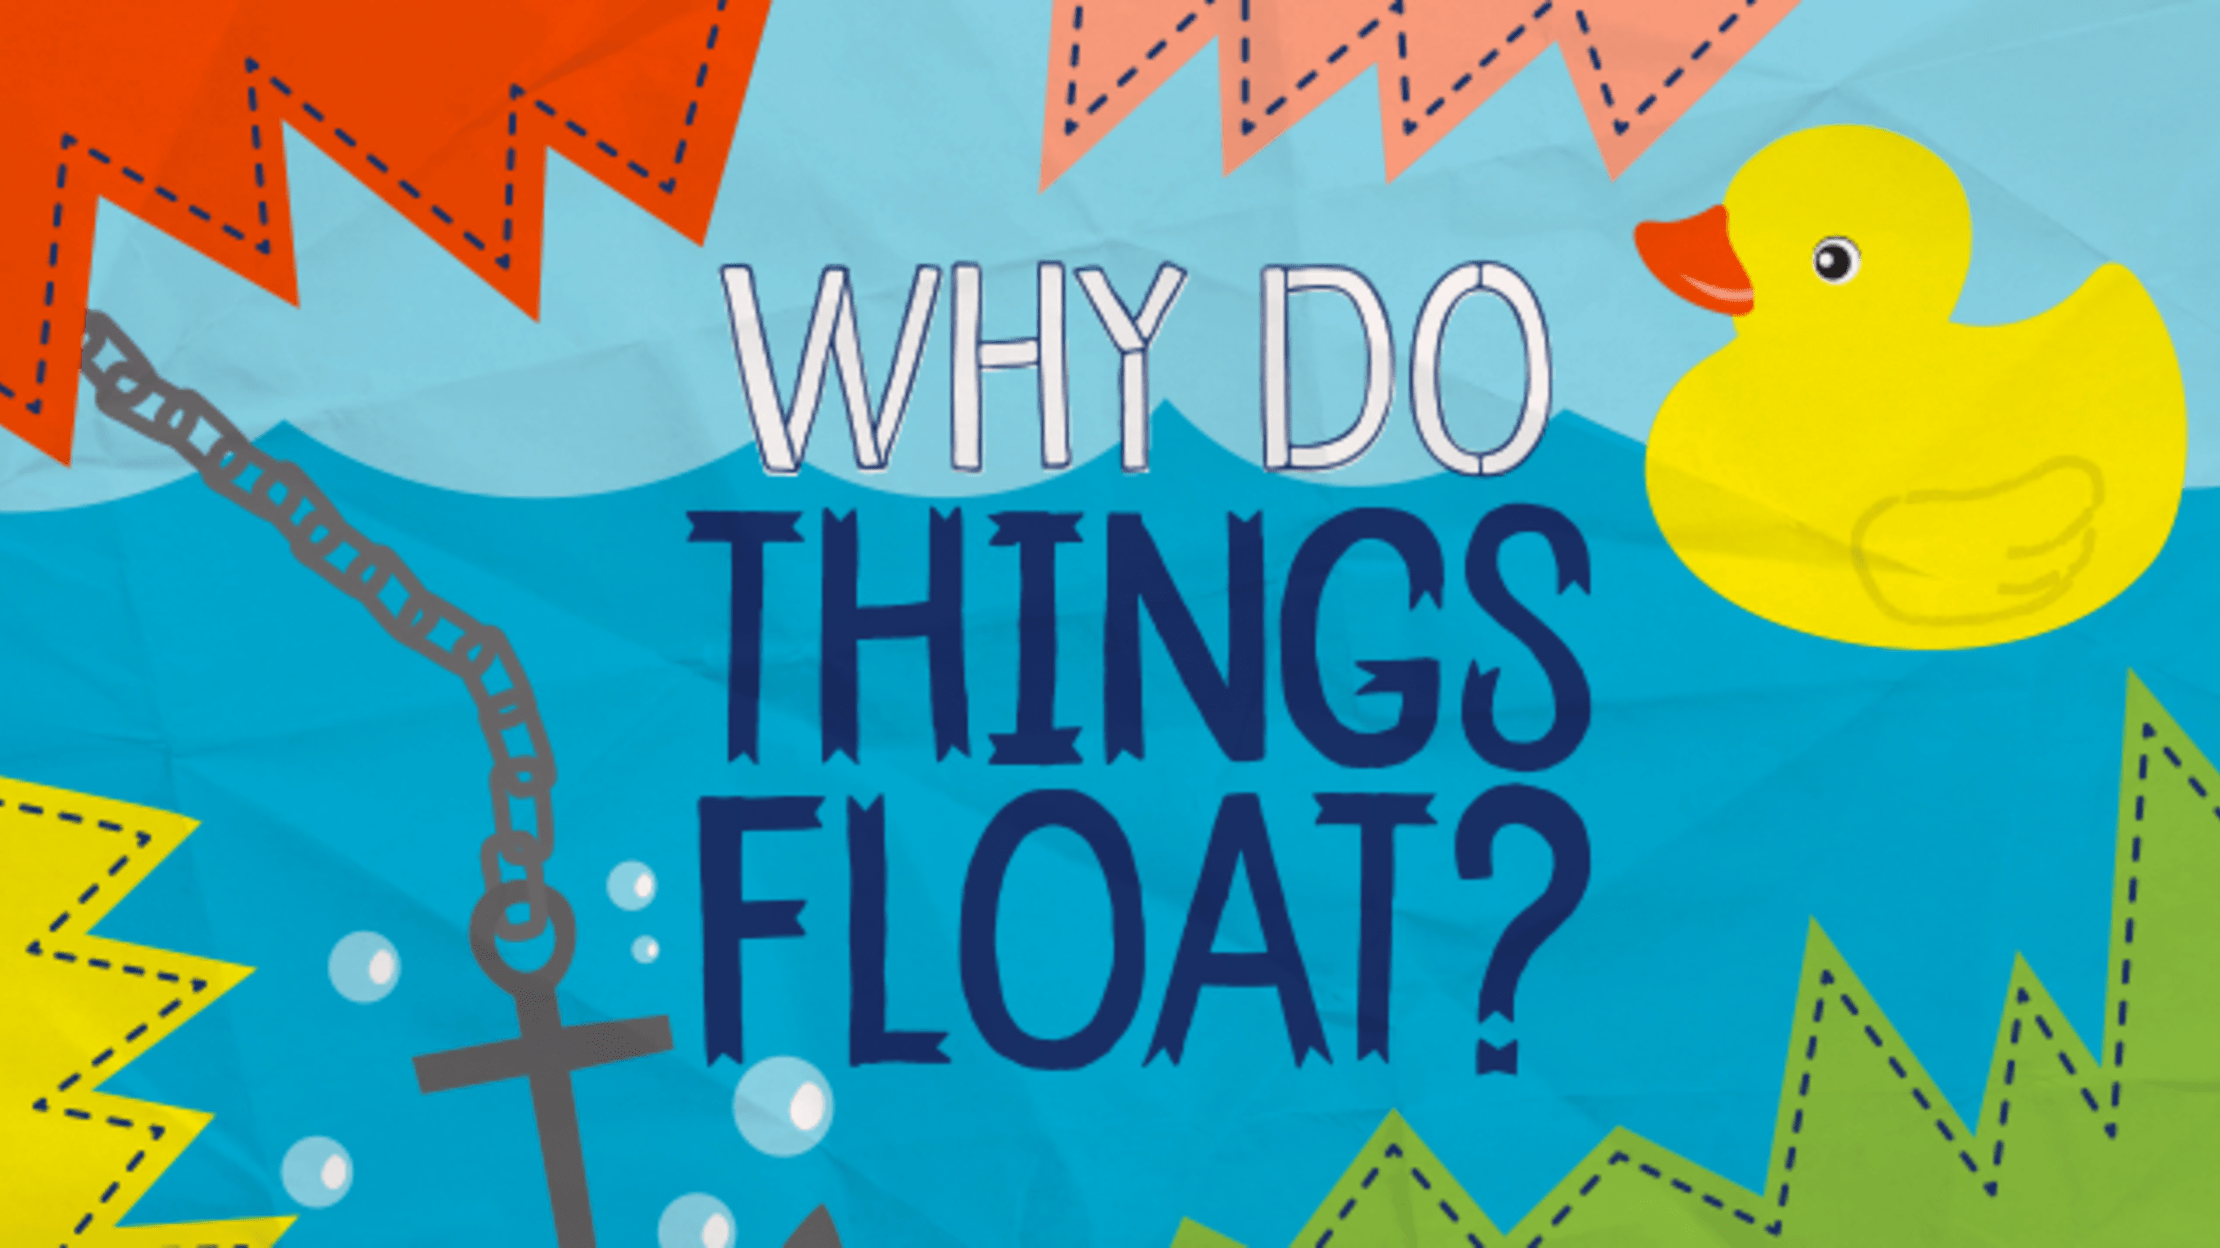 Do Things Why Do Things Float In Water Mental Floss